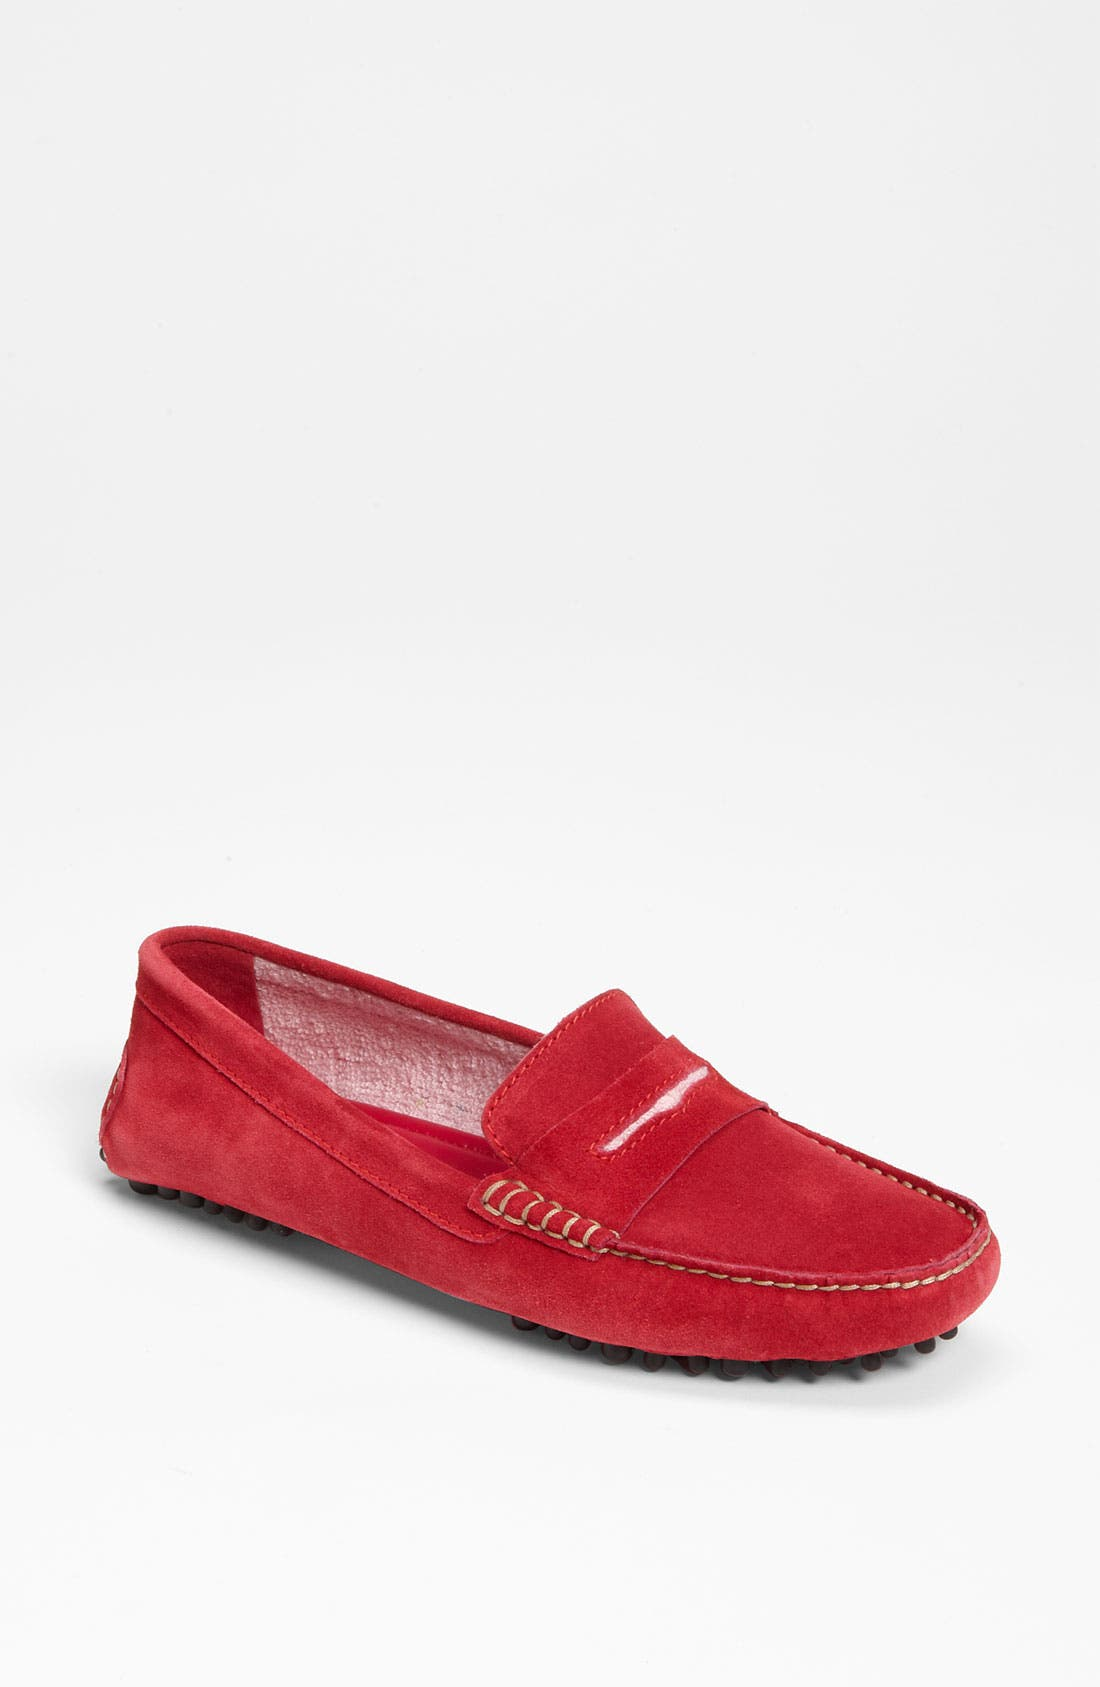 Alternate Image 1 Selected - Manolo Blahnik Driving Moccasin